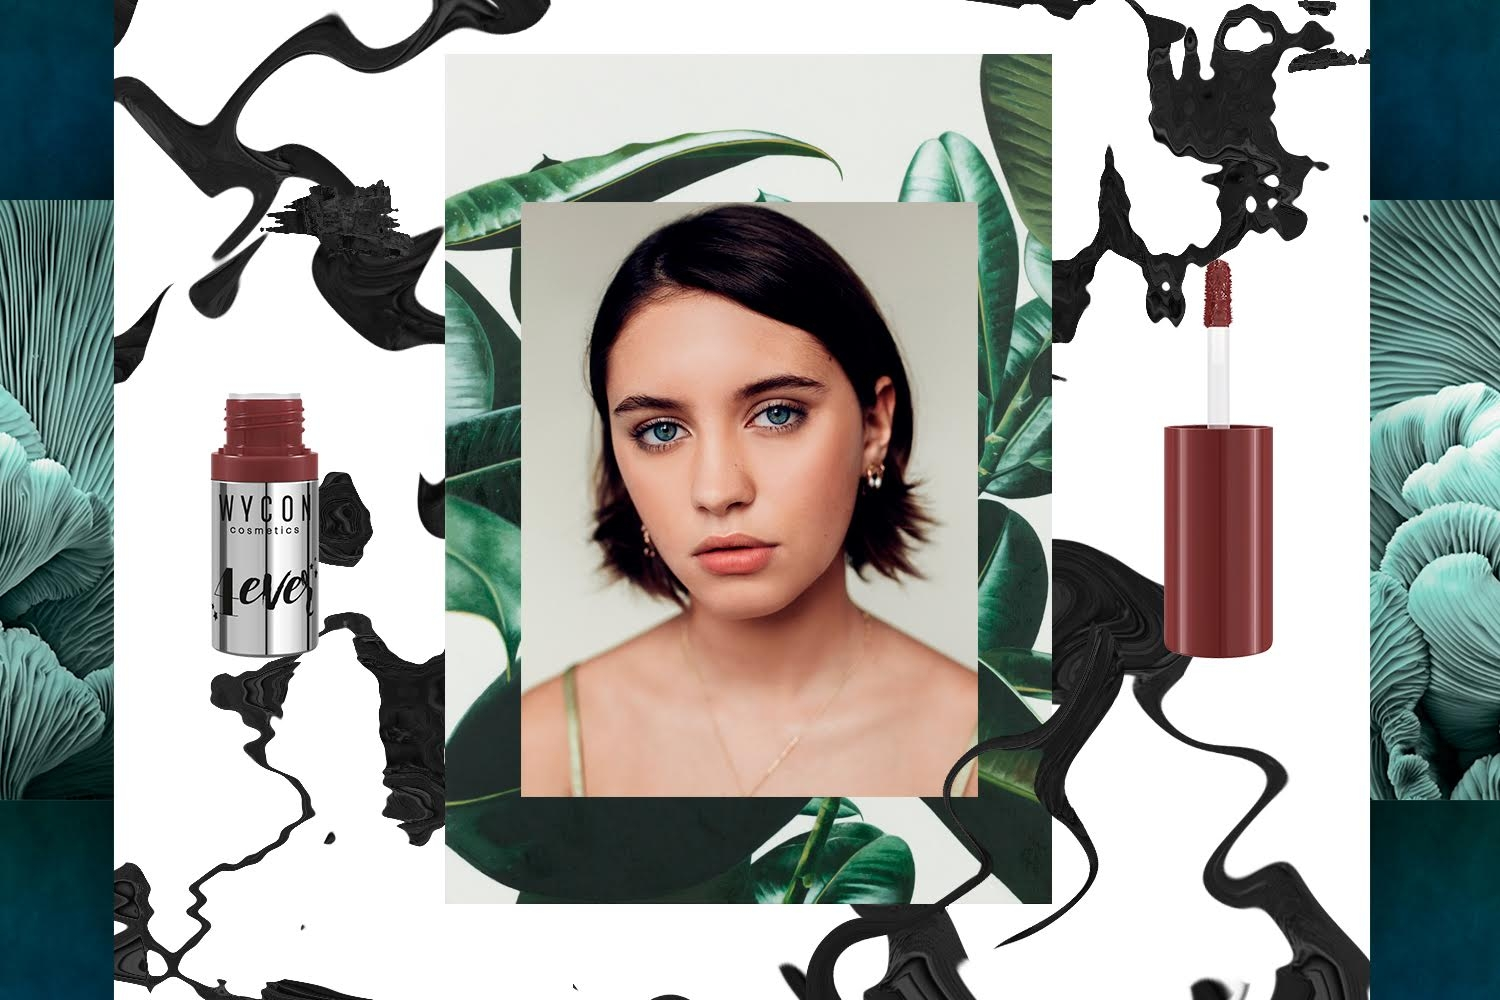 GET THE LOOK OF IRIS LAW Ottieni l'effetto Iris Law con WYCON cosmetics in pochi e semplici step